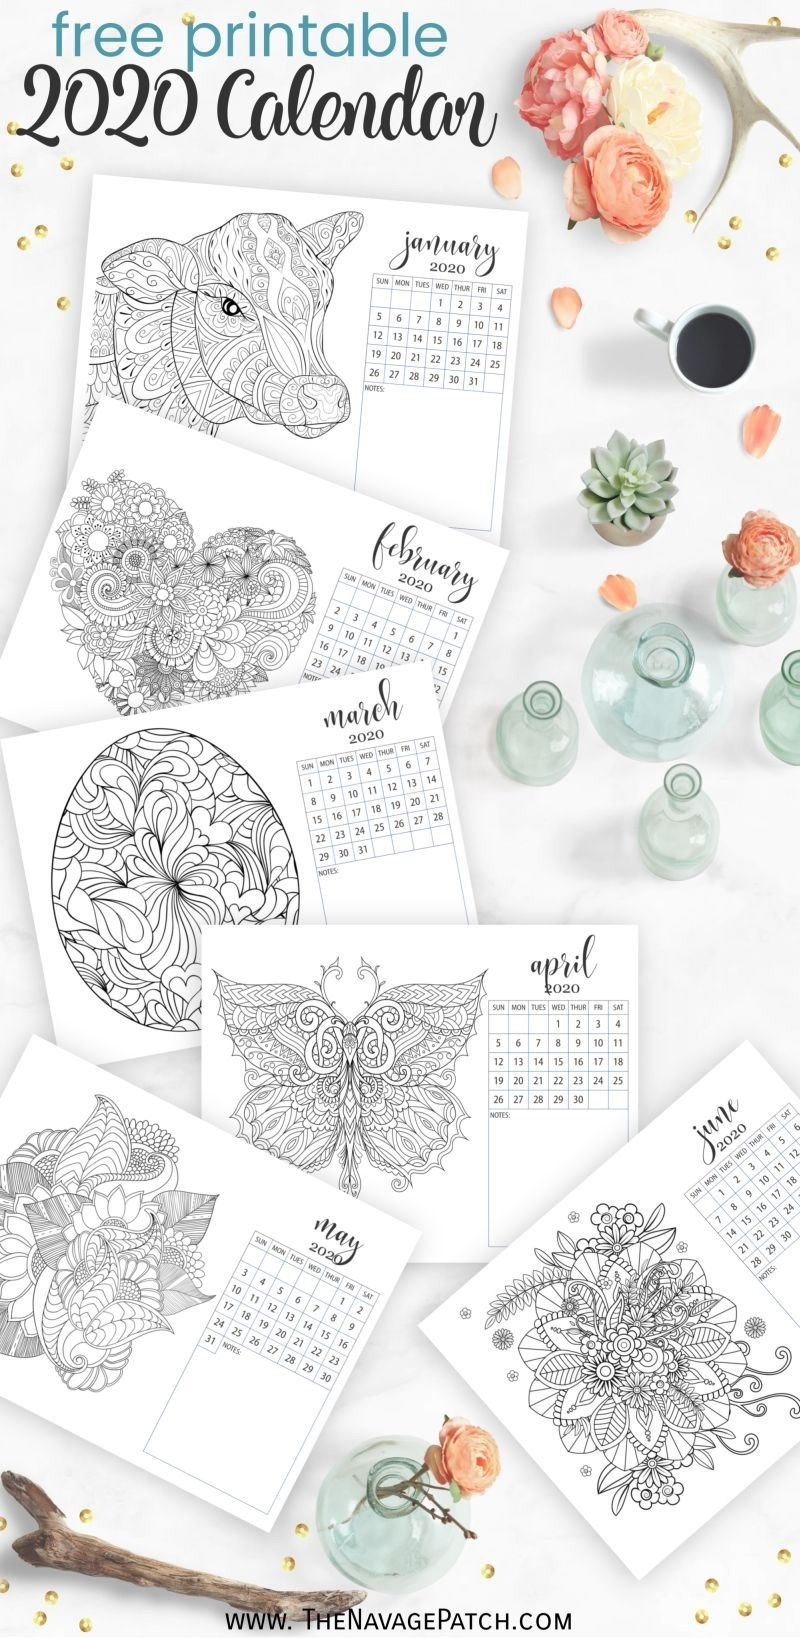 Free Printable Adult Coloring Calendar For 2020 | Free Adult pertaining to Adult Coloring 2020 Calendar Printable